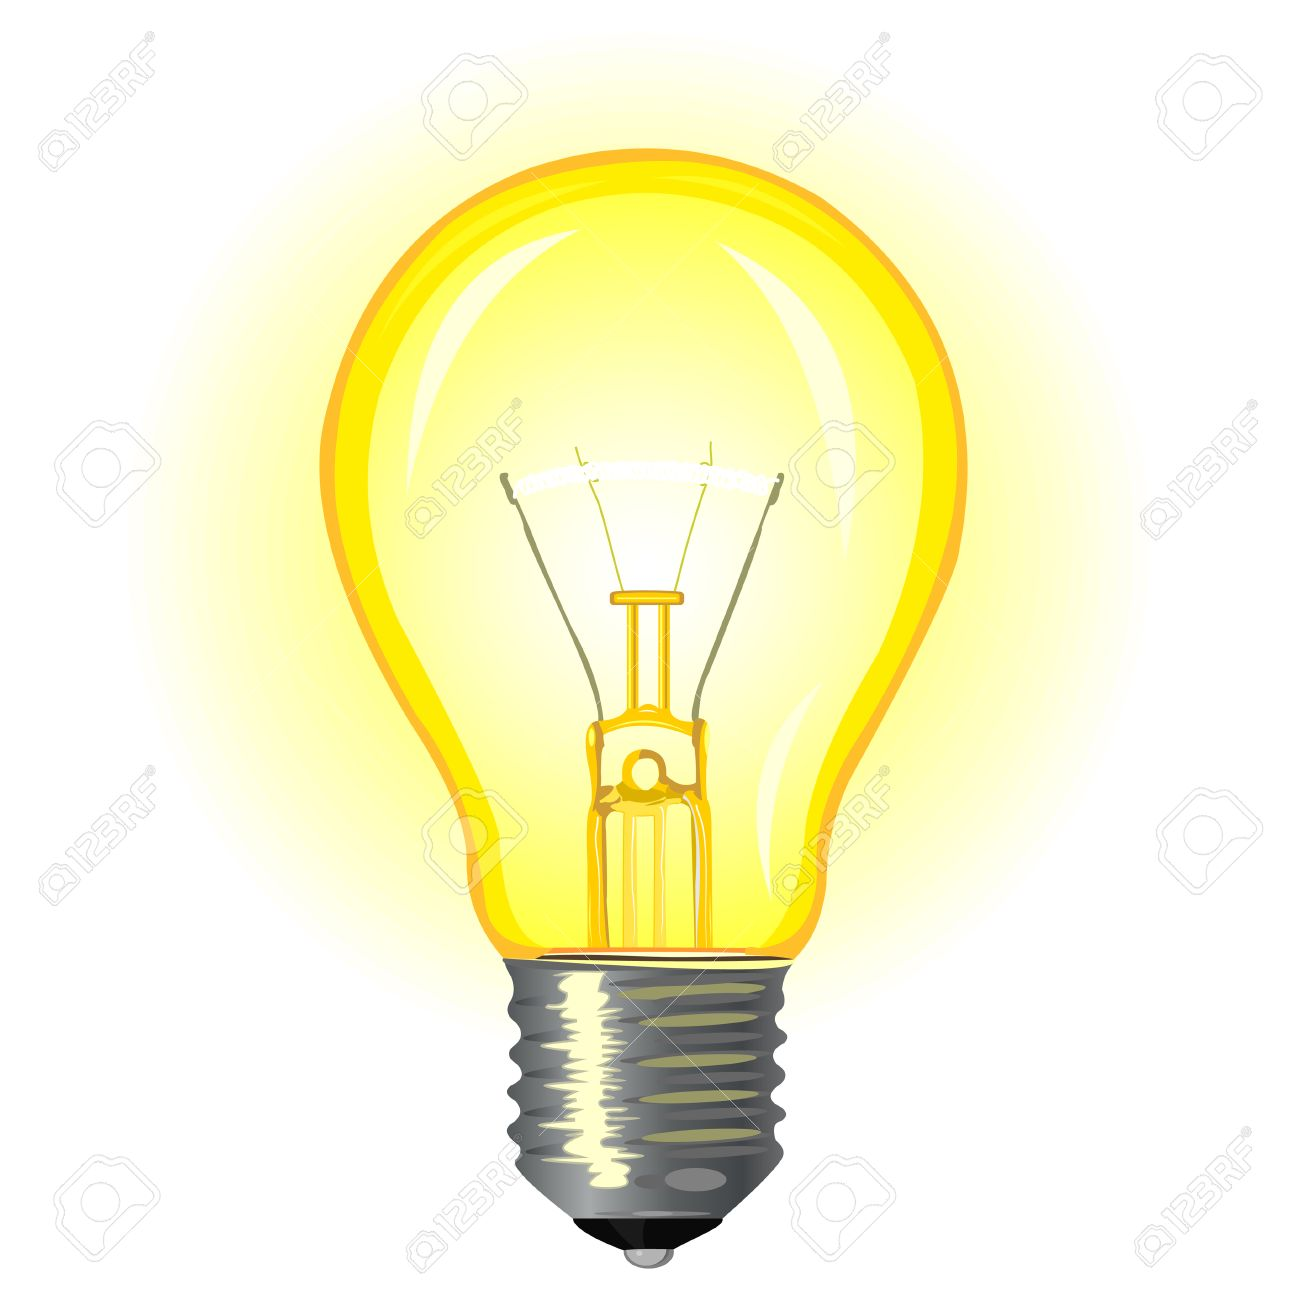 Bright Glowing Incandescent Light Bulb On A White Background Royalty